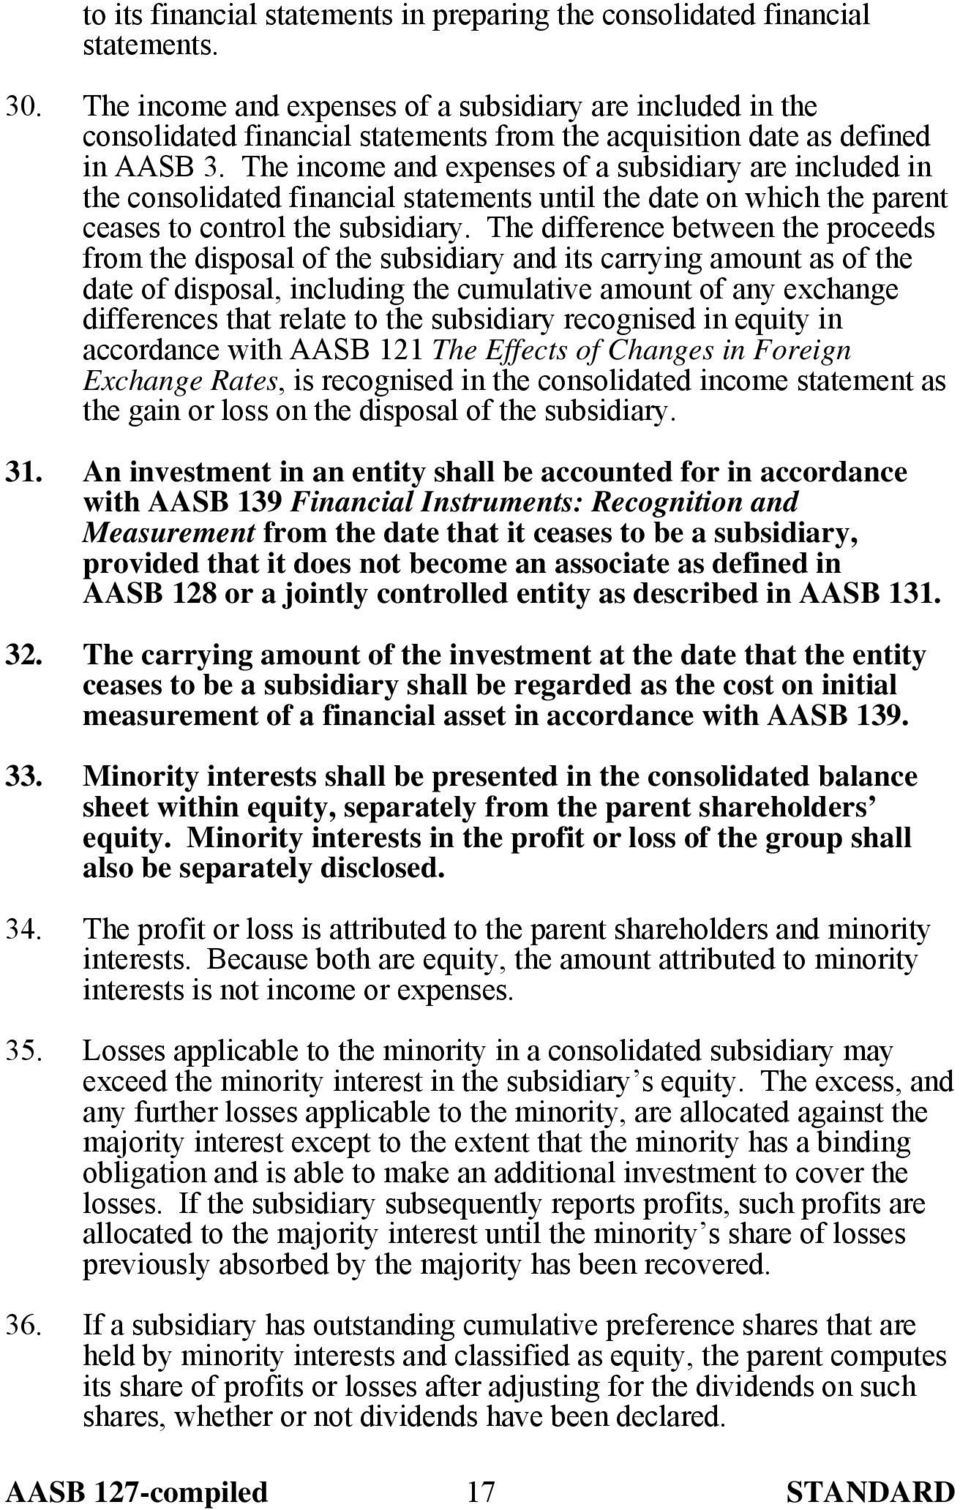 The income and expenses of a subsidiary are included in the consolidated financial statements until the date on which the parent ceases to control the subsidiary.